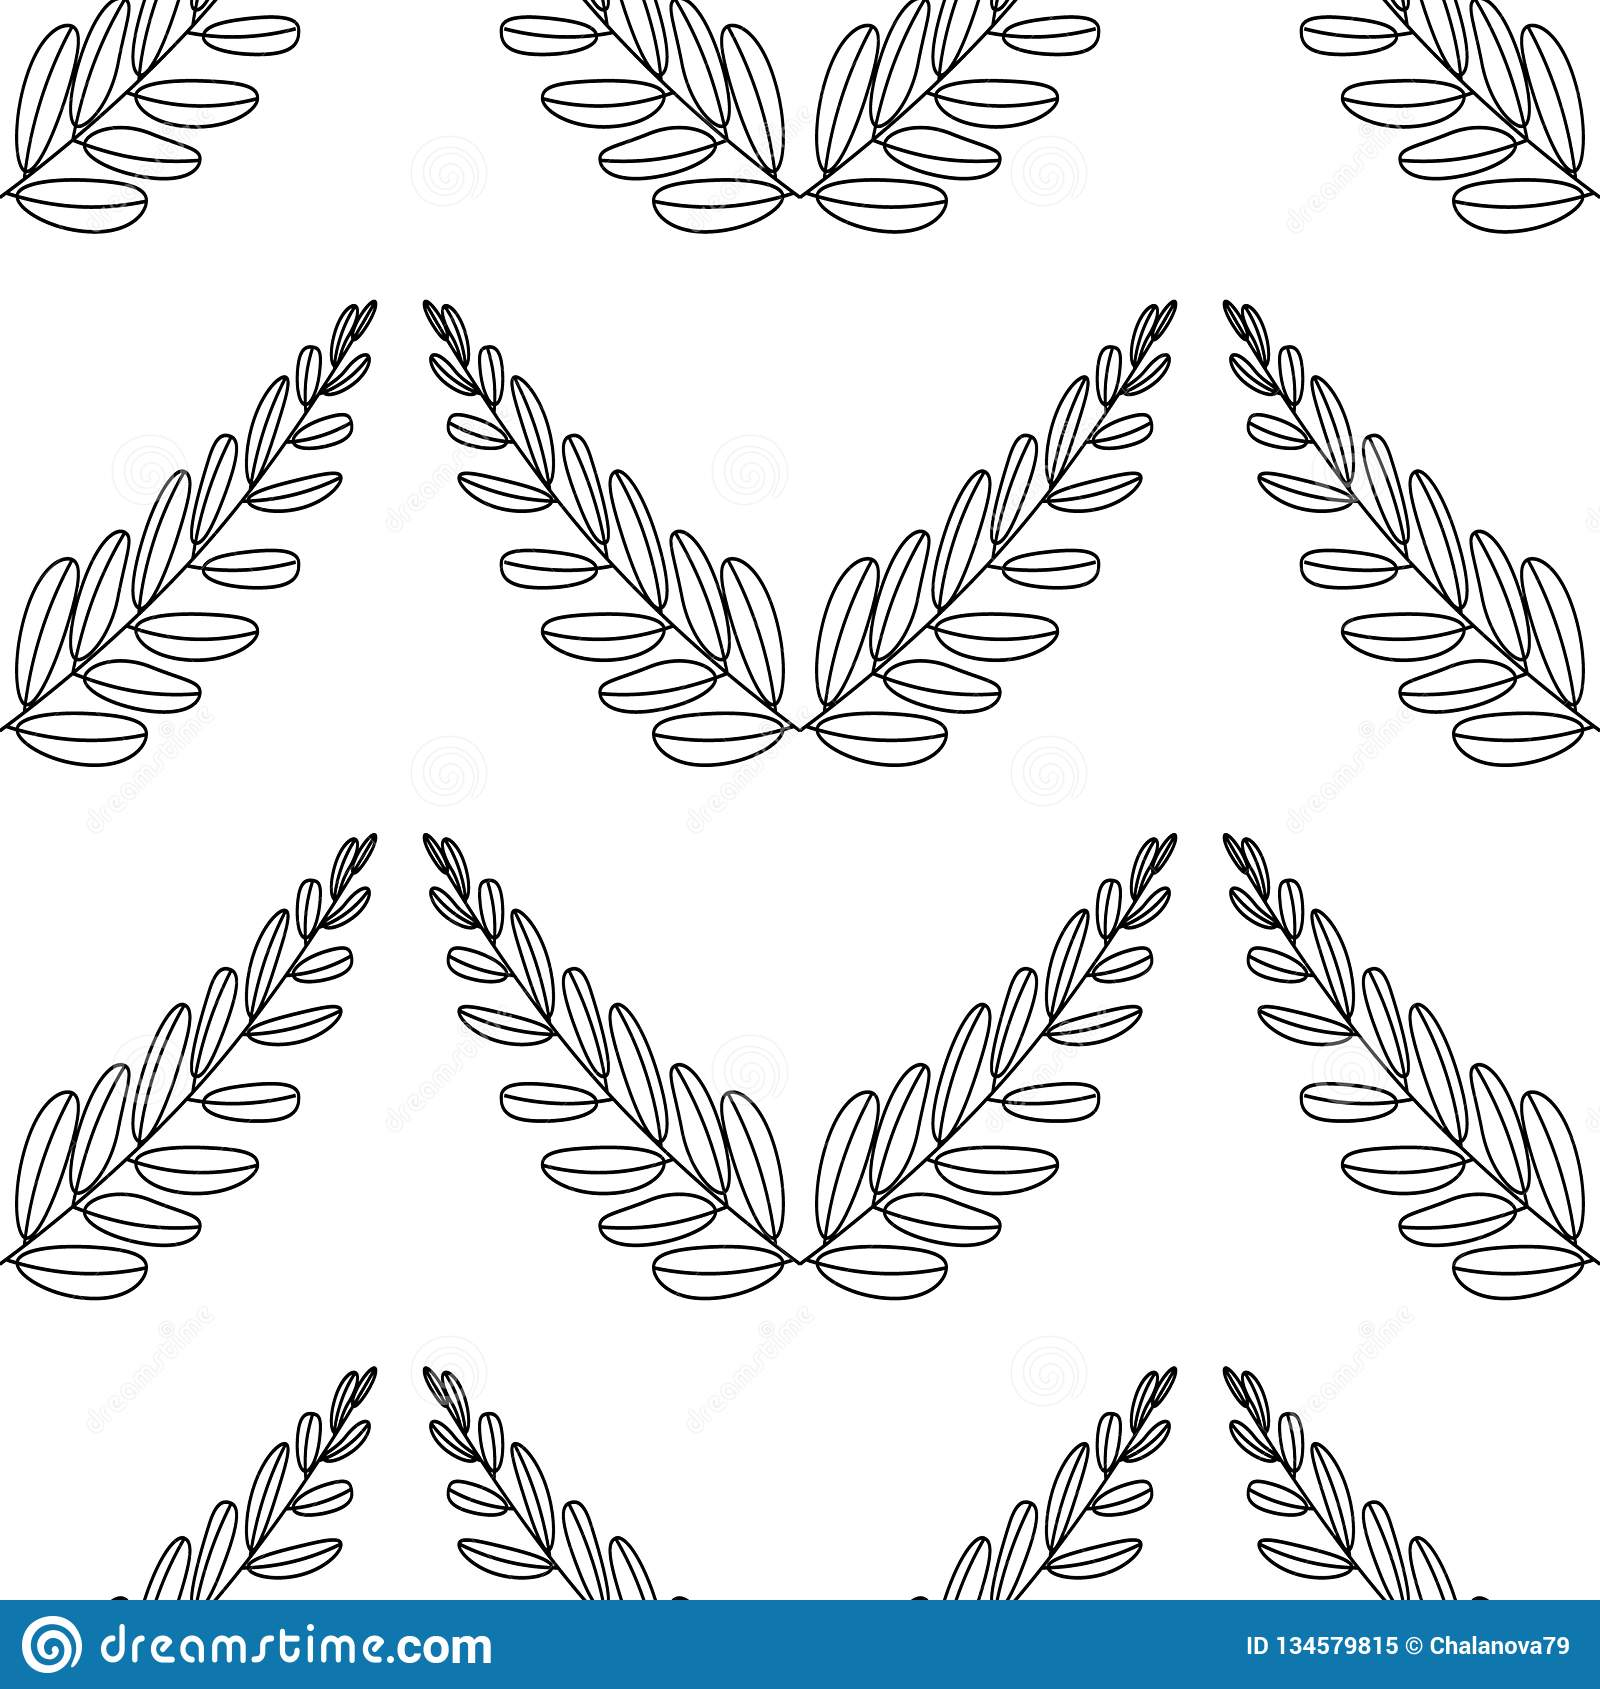 Branches Of Olives Symbol Victory Vector Illustration Flat Silhouette Black White Icon Design Laurel Wreath Awards Roman Ornate